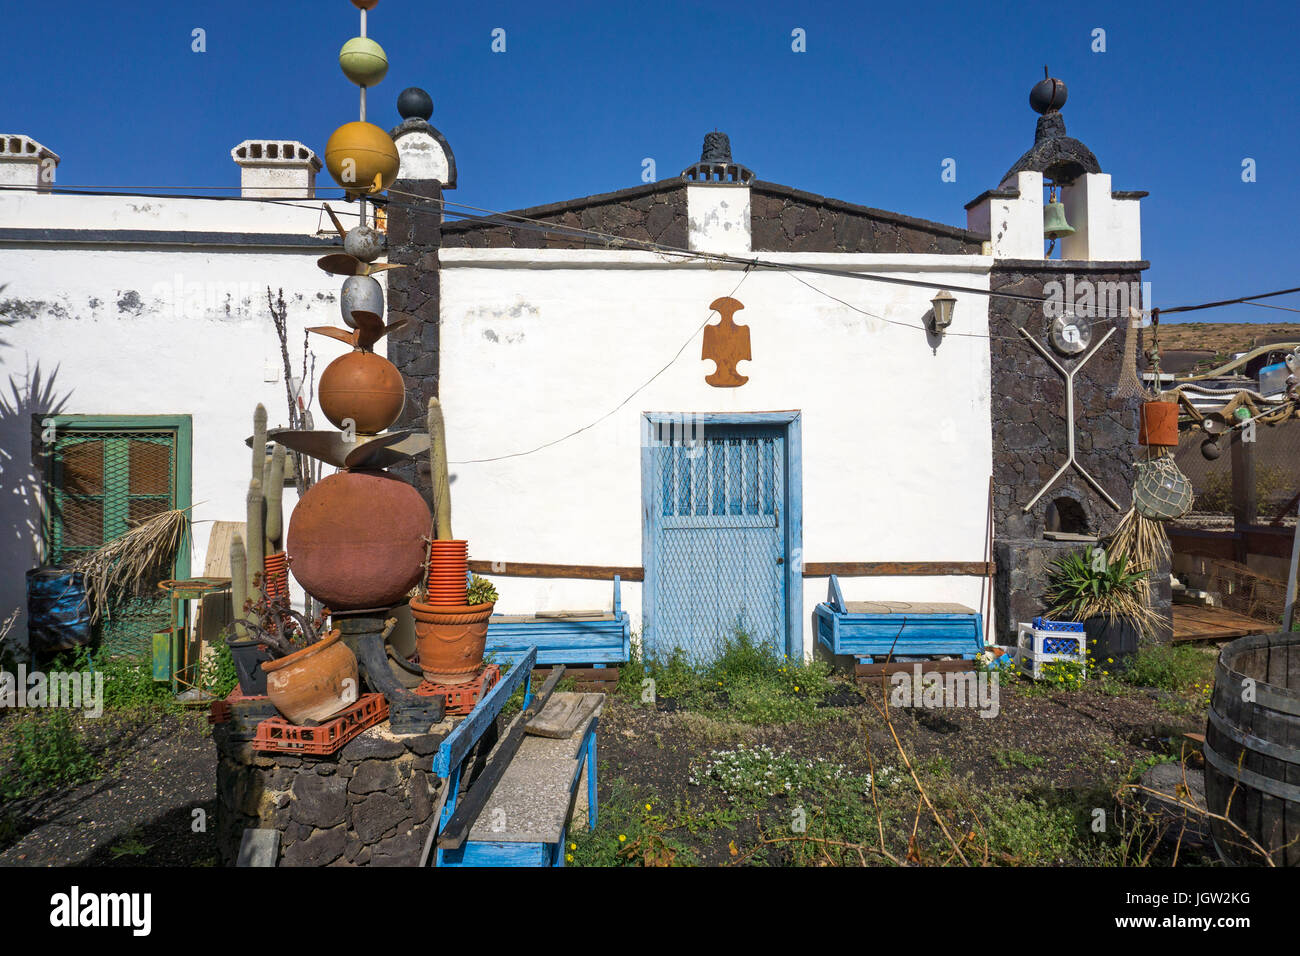 Curious house of a artist at Las Casitas de Femes, Lanzarote island, Canary islands, Spain, Europe - Stock Image